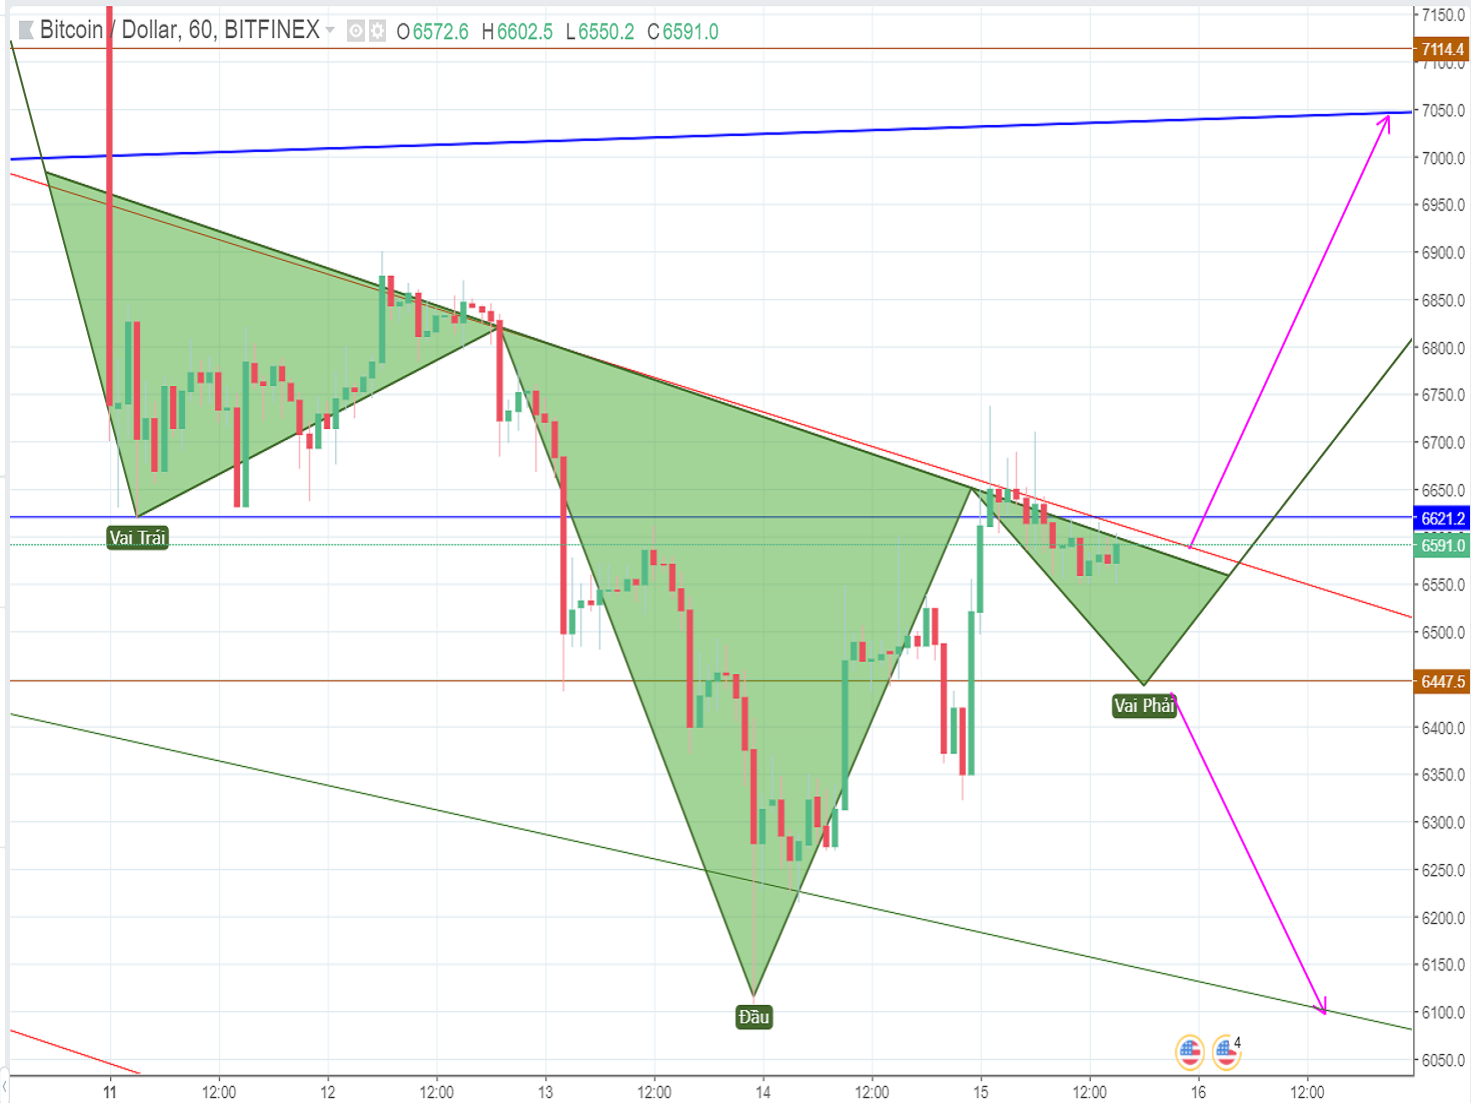 Bitcoin price analysis on Sunday (June 15th): Positive news from SEC push the Bitcoin price up